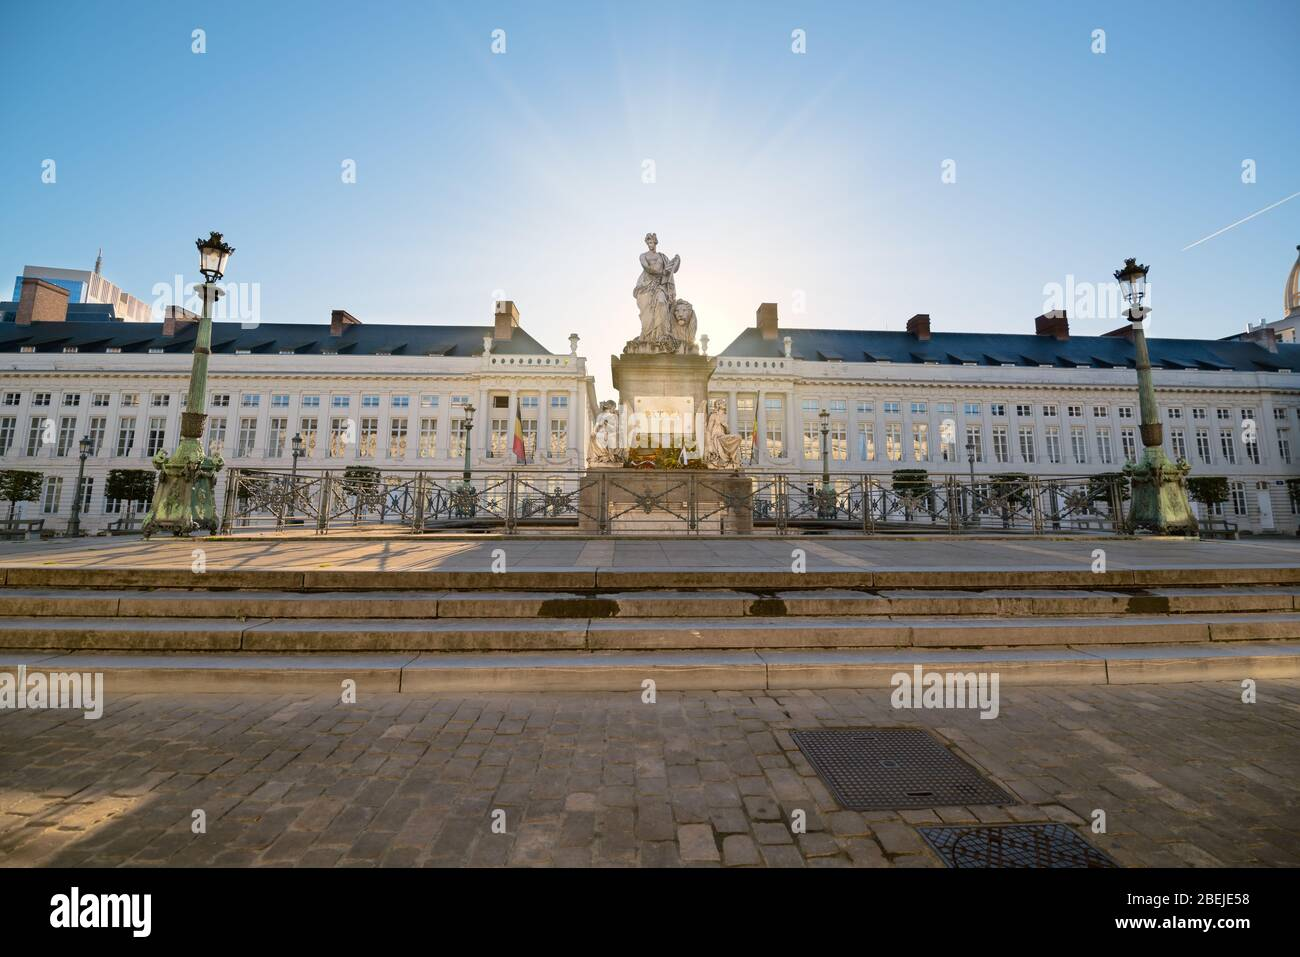 Martyrs' Square (Place des Martyrs). Sunrise behind statue. Belgian flag. Brussels, Belgium Stock Photo